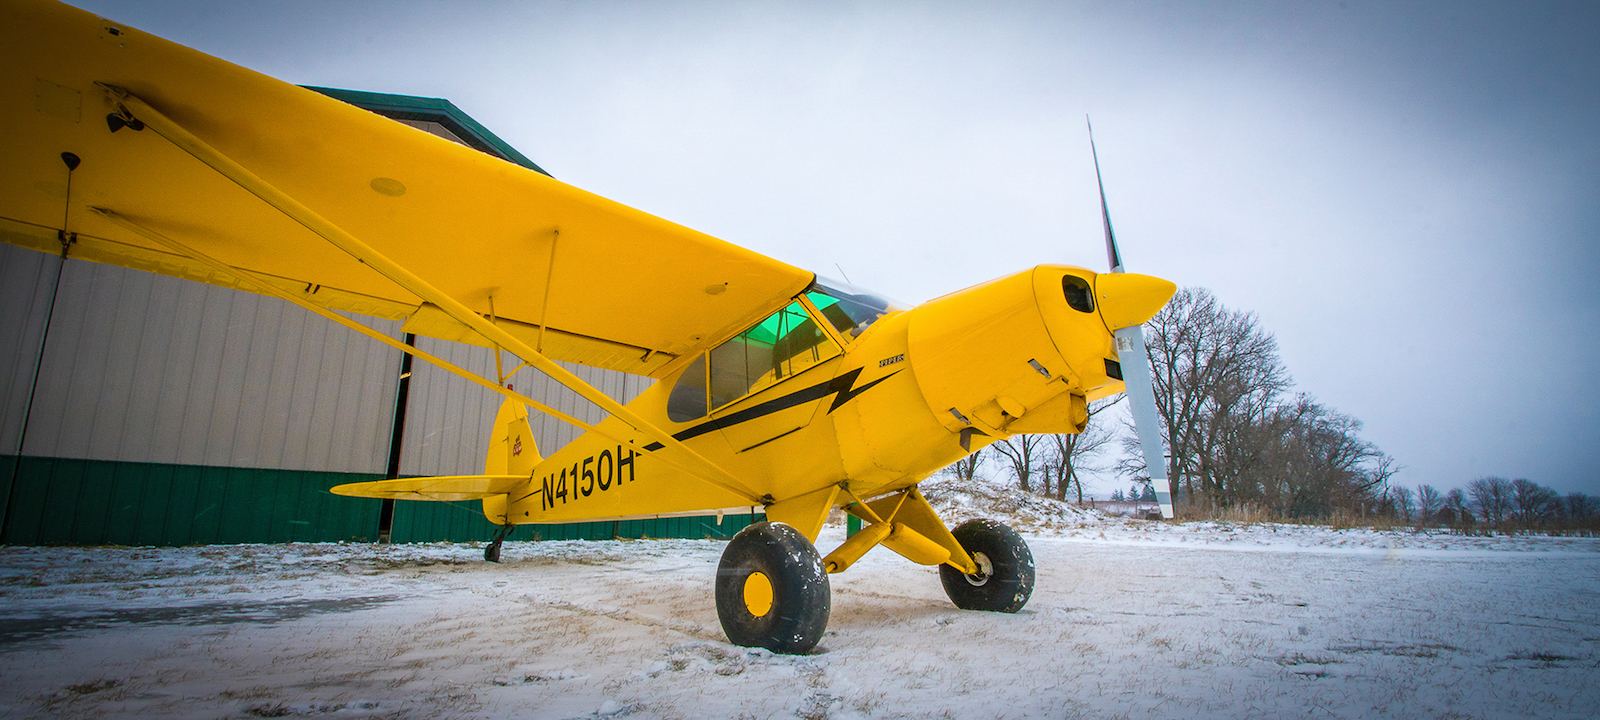 Aircraft Listing - Super Cub PA-18-150 listed for sale